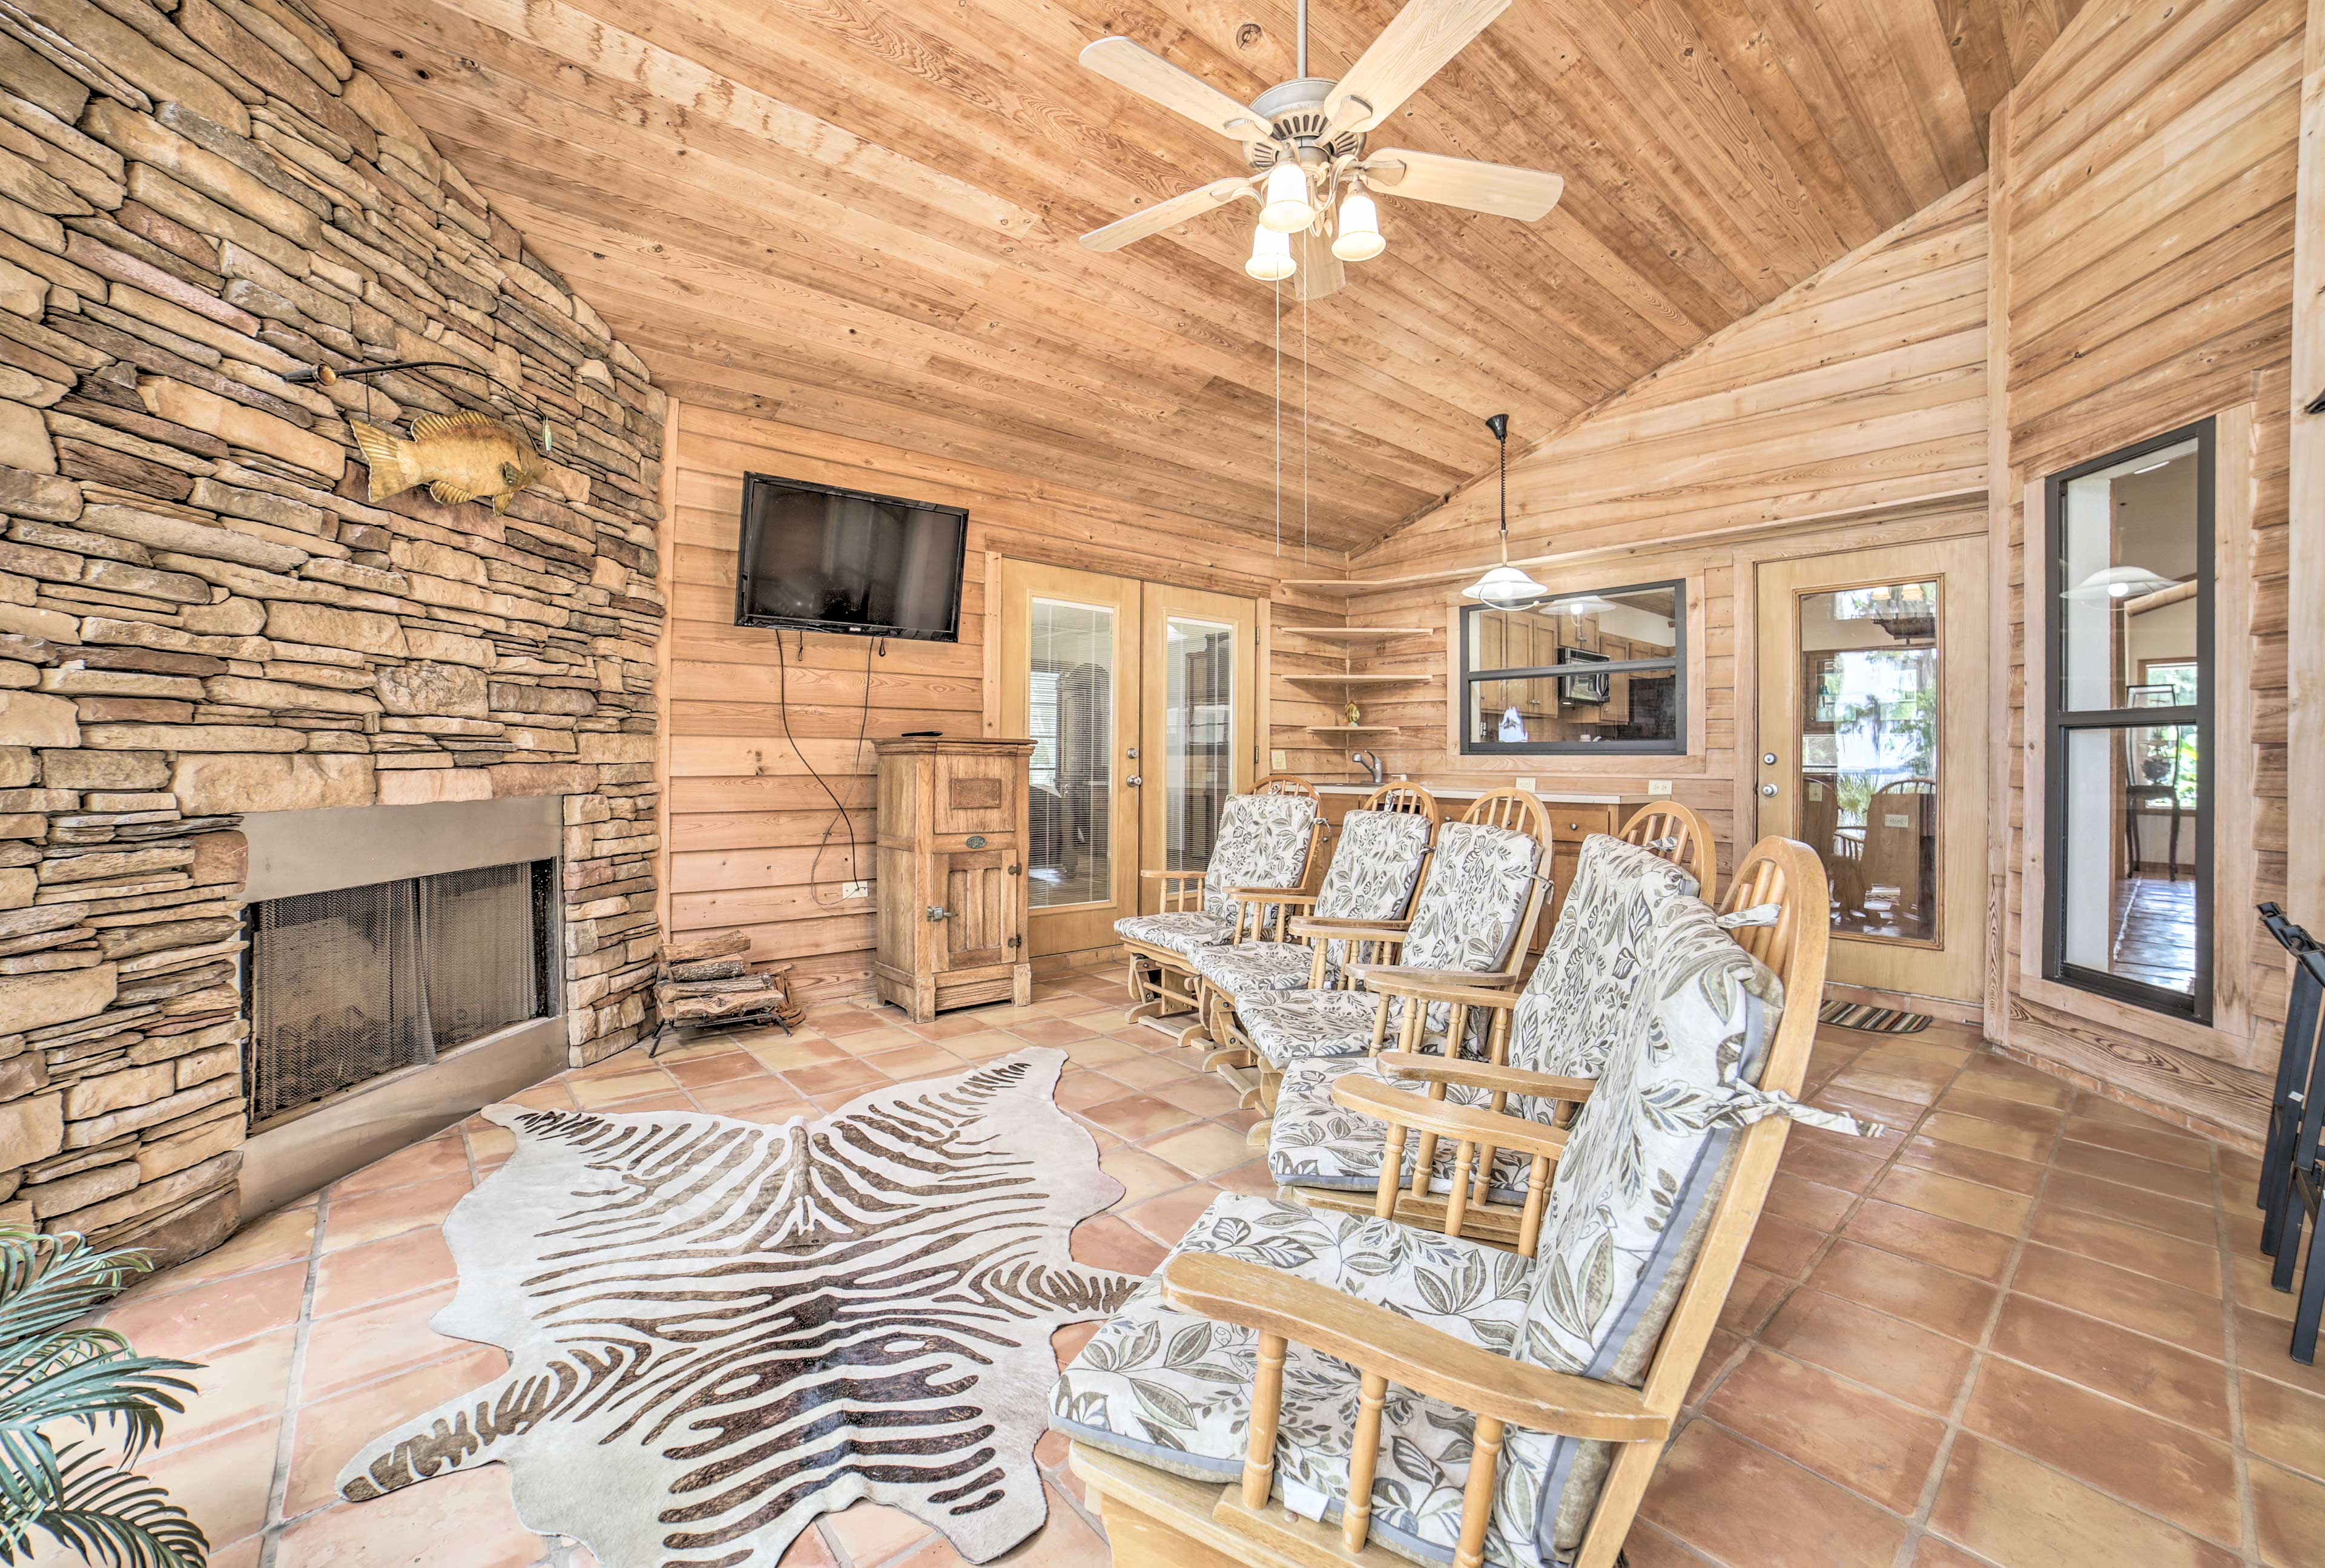 This room features a flat-screen TV, fireplace, rocking chairs, a grill & more!